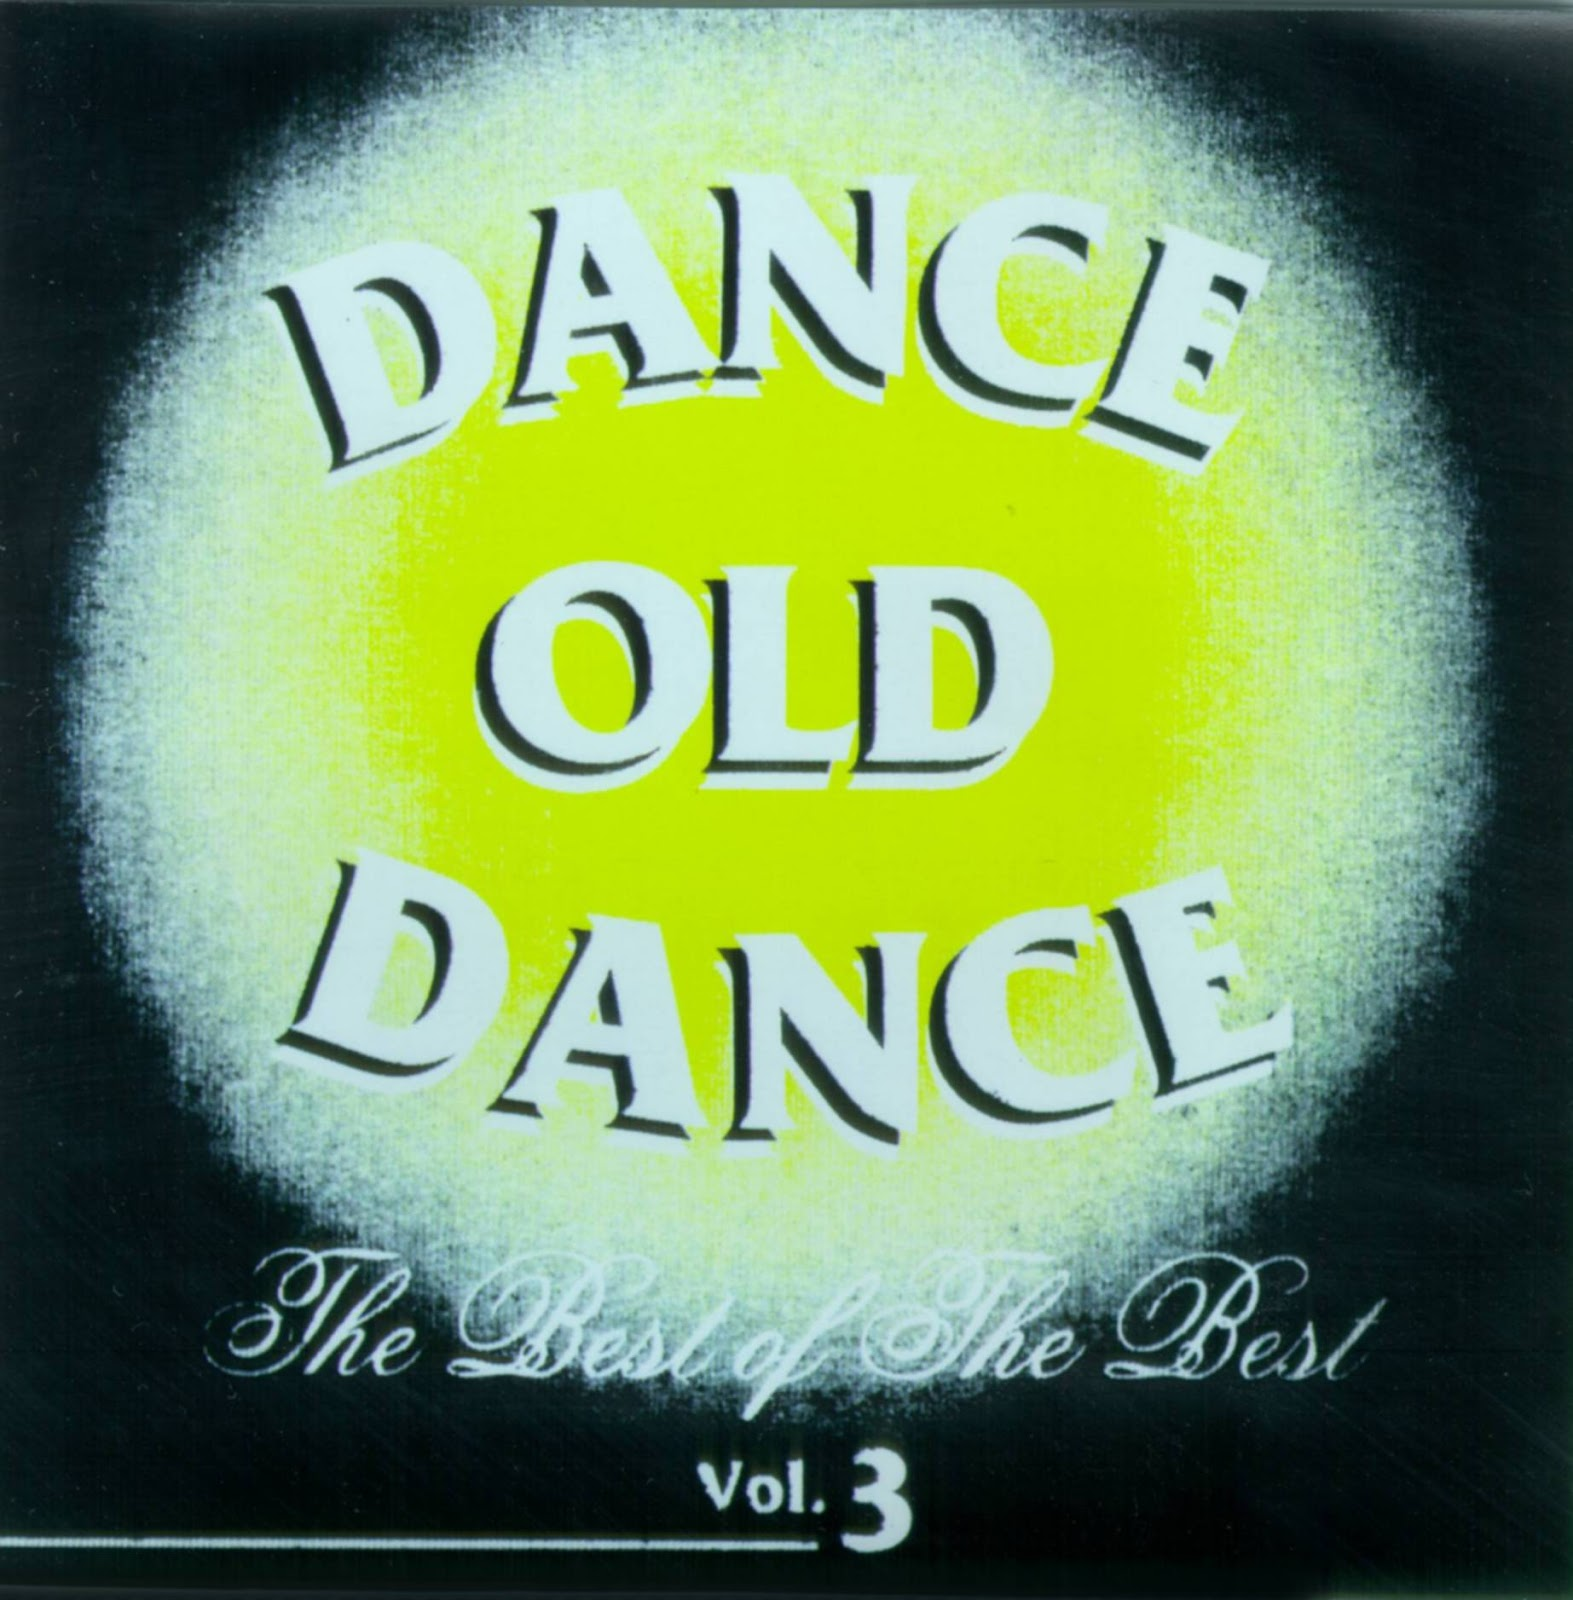 Dance vs house varios dance old dance vol 3 for Classic house mastercuts vol 3